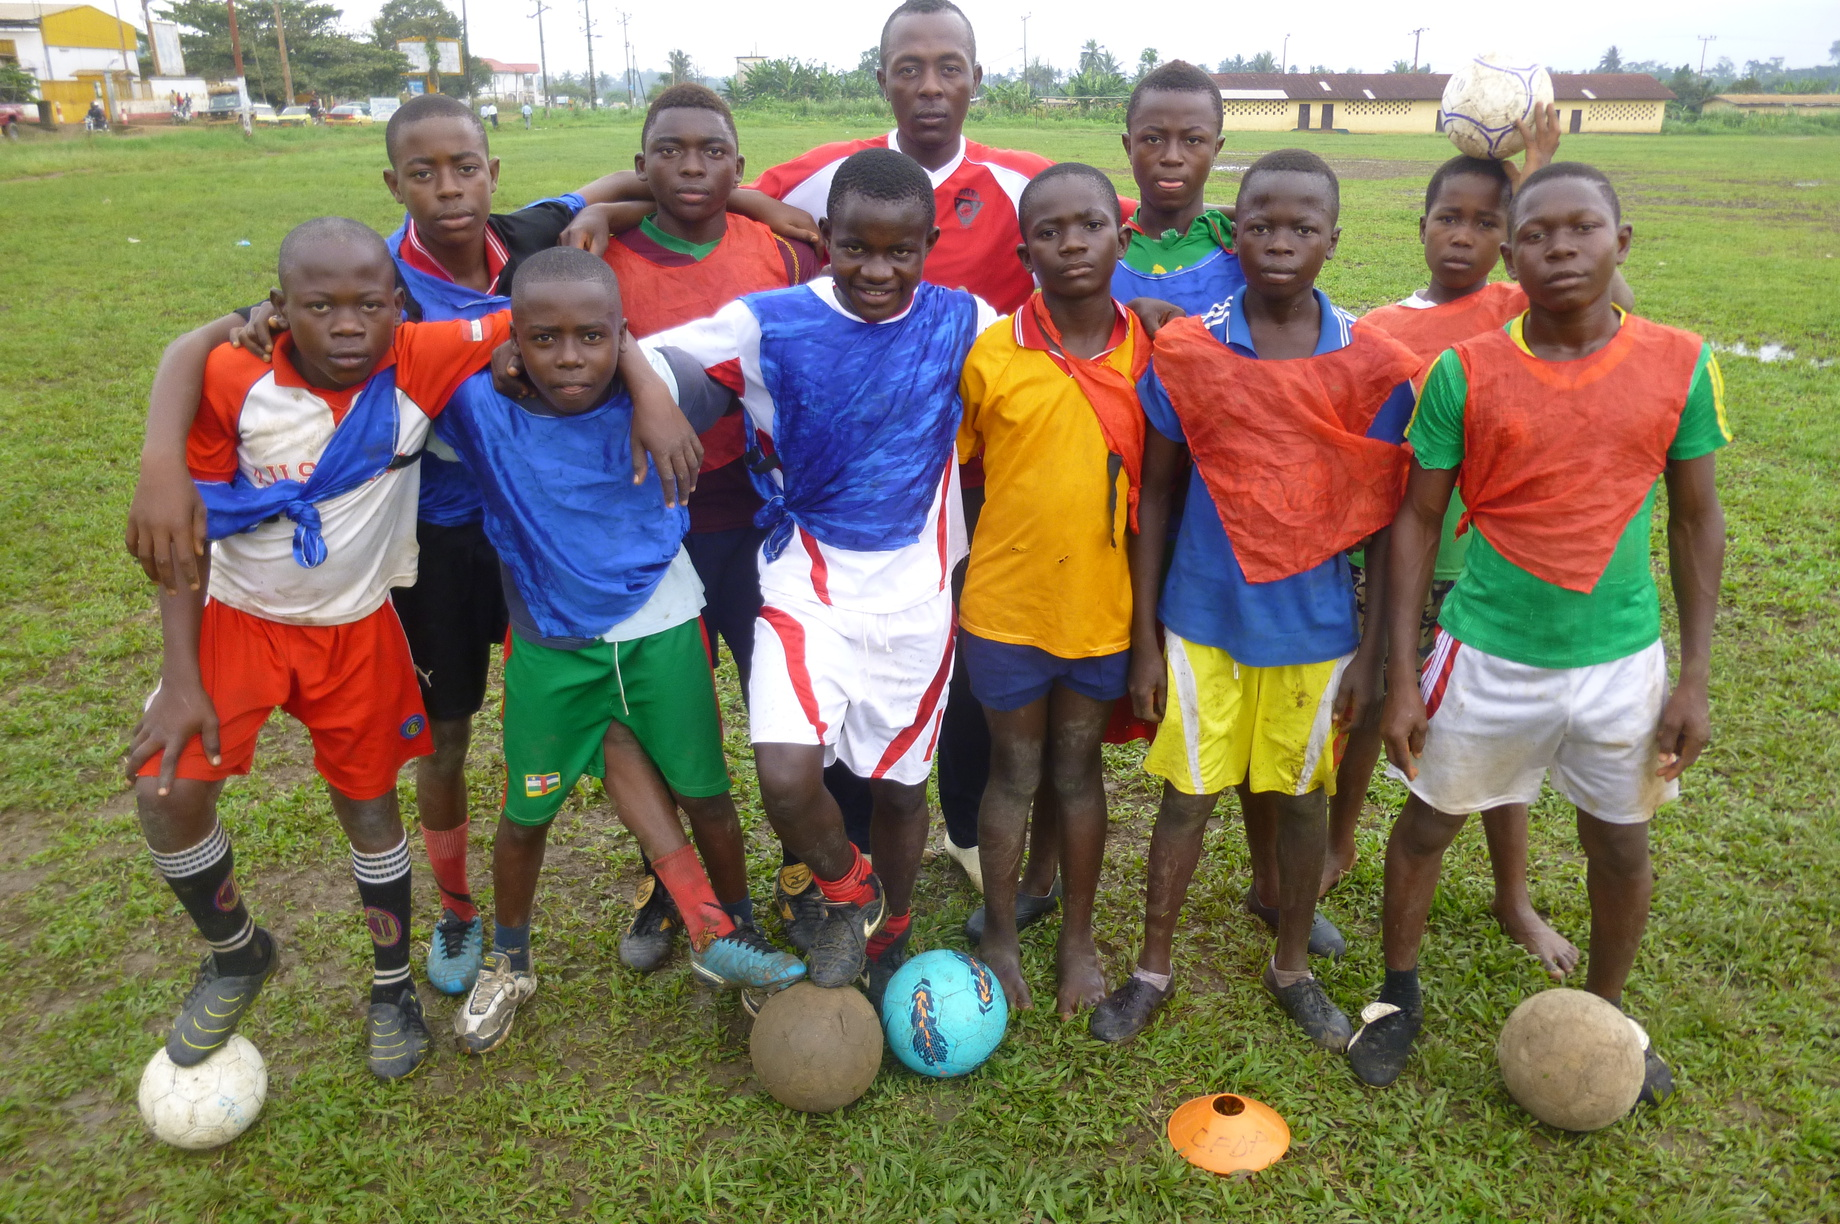 Launch a Youth Soccer League in Cameroon